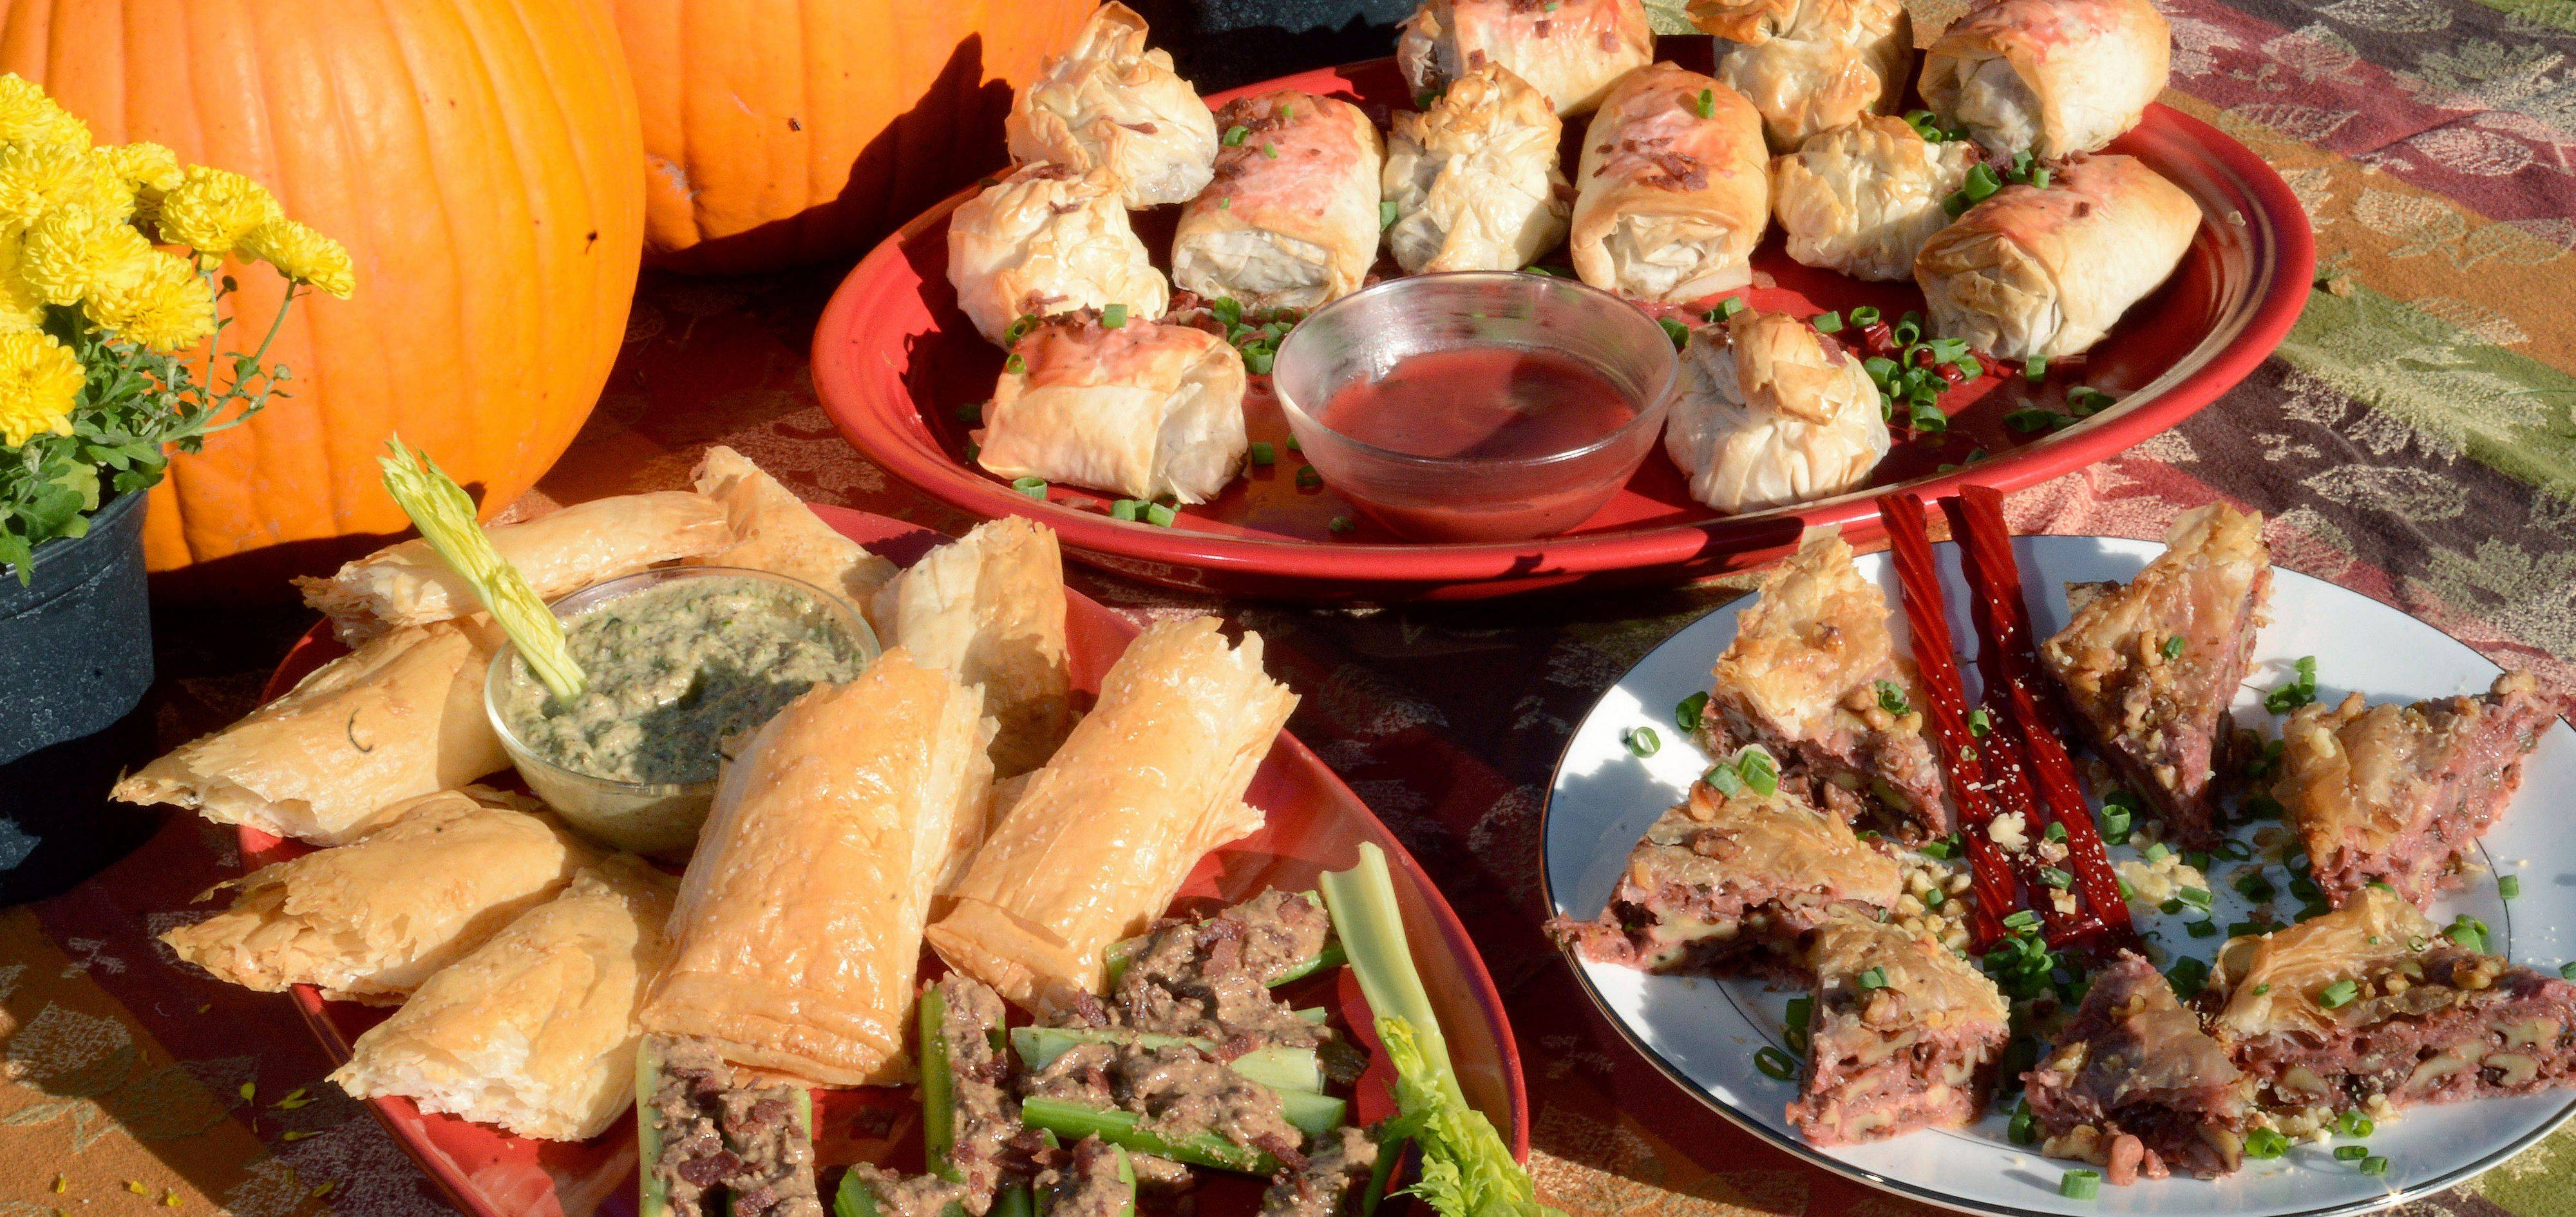 Almond Butter and Bacon-Stuffed Celery Boats; Phyllo Bombs (with Twisted Tops) and Beef Wellington with Almond Butter Pate, both served with a Twizzler Port Sauce; and Savory Baklava